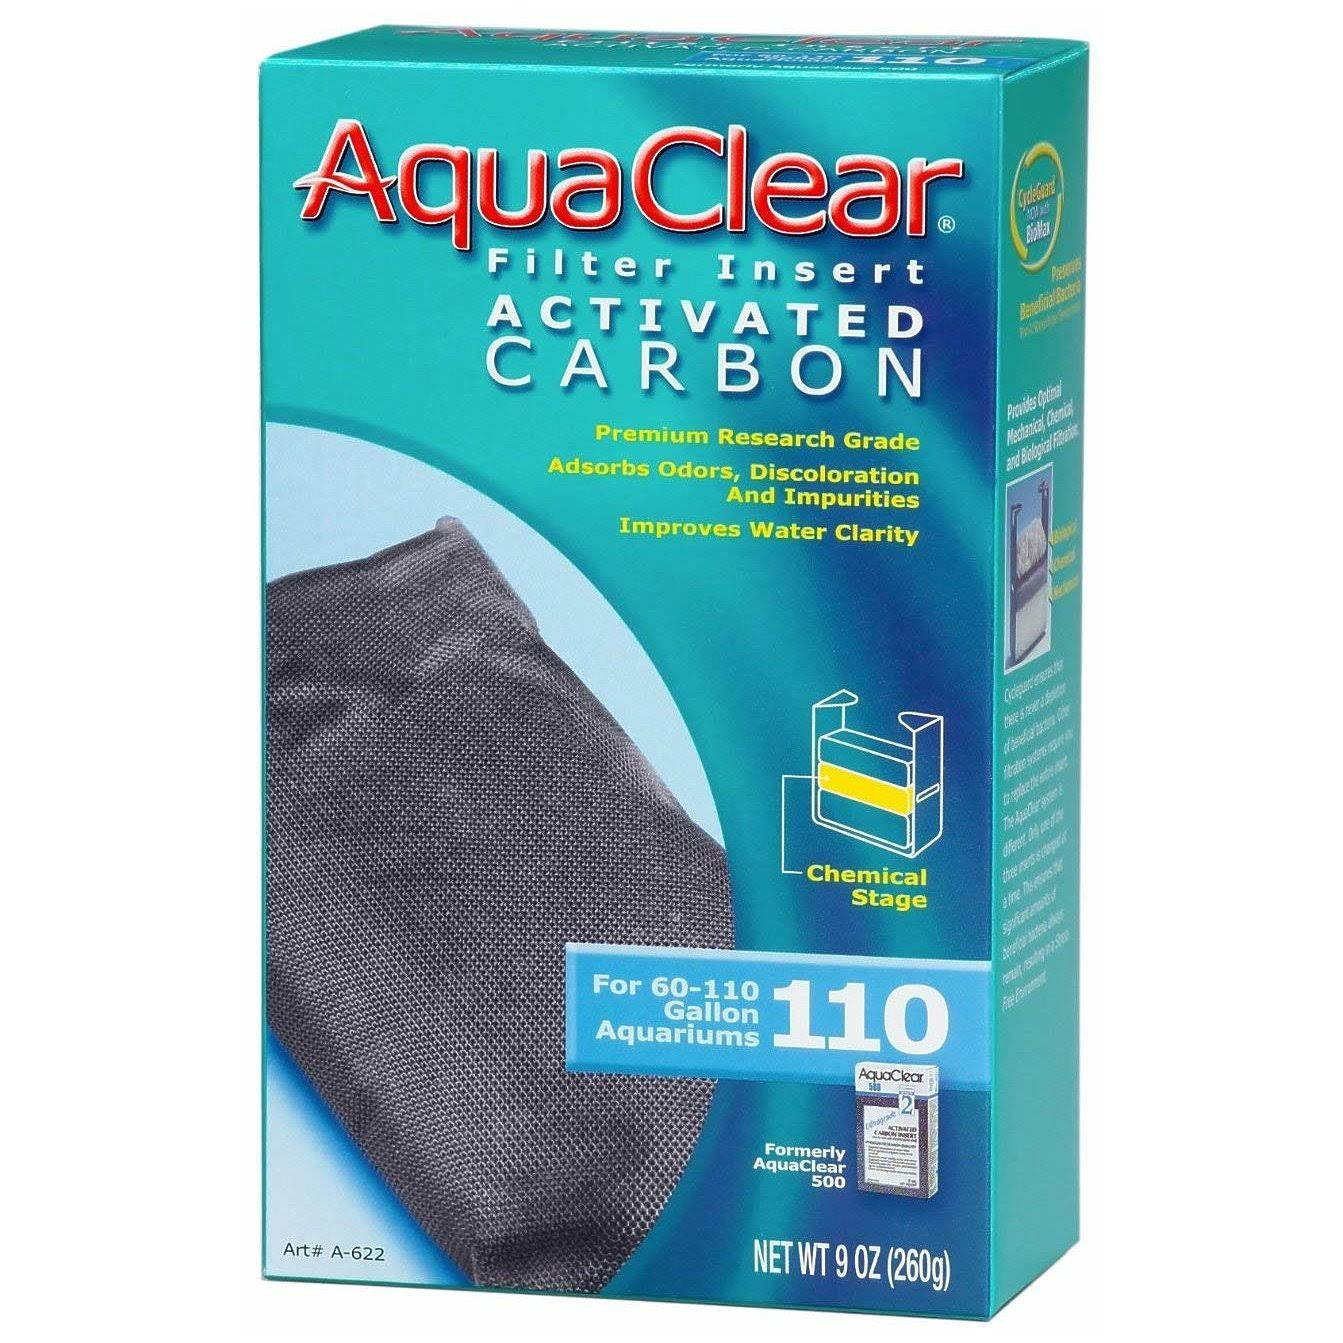 AquaClear Activated Carbon Filter Insert - 9 oz